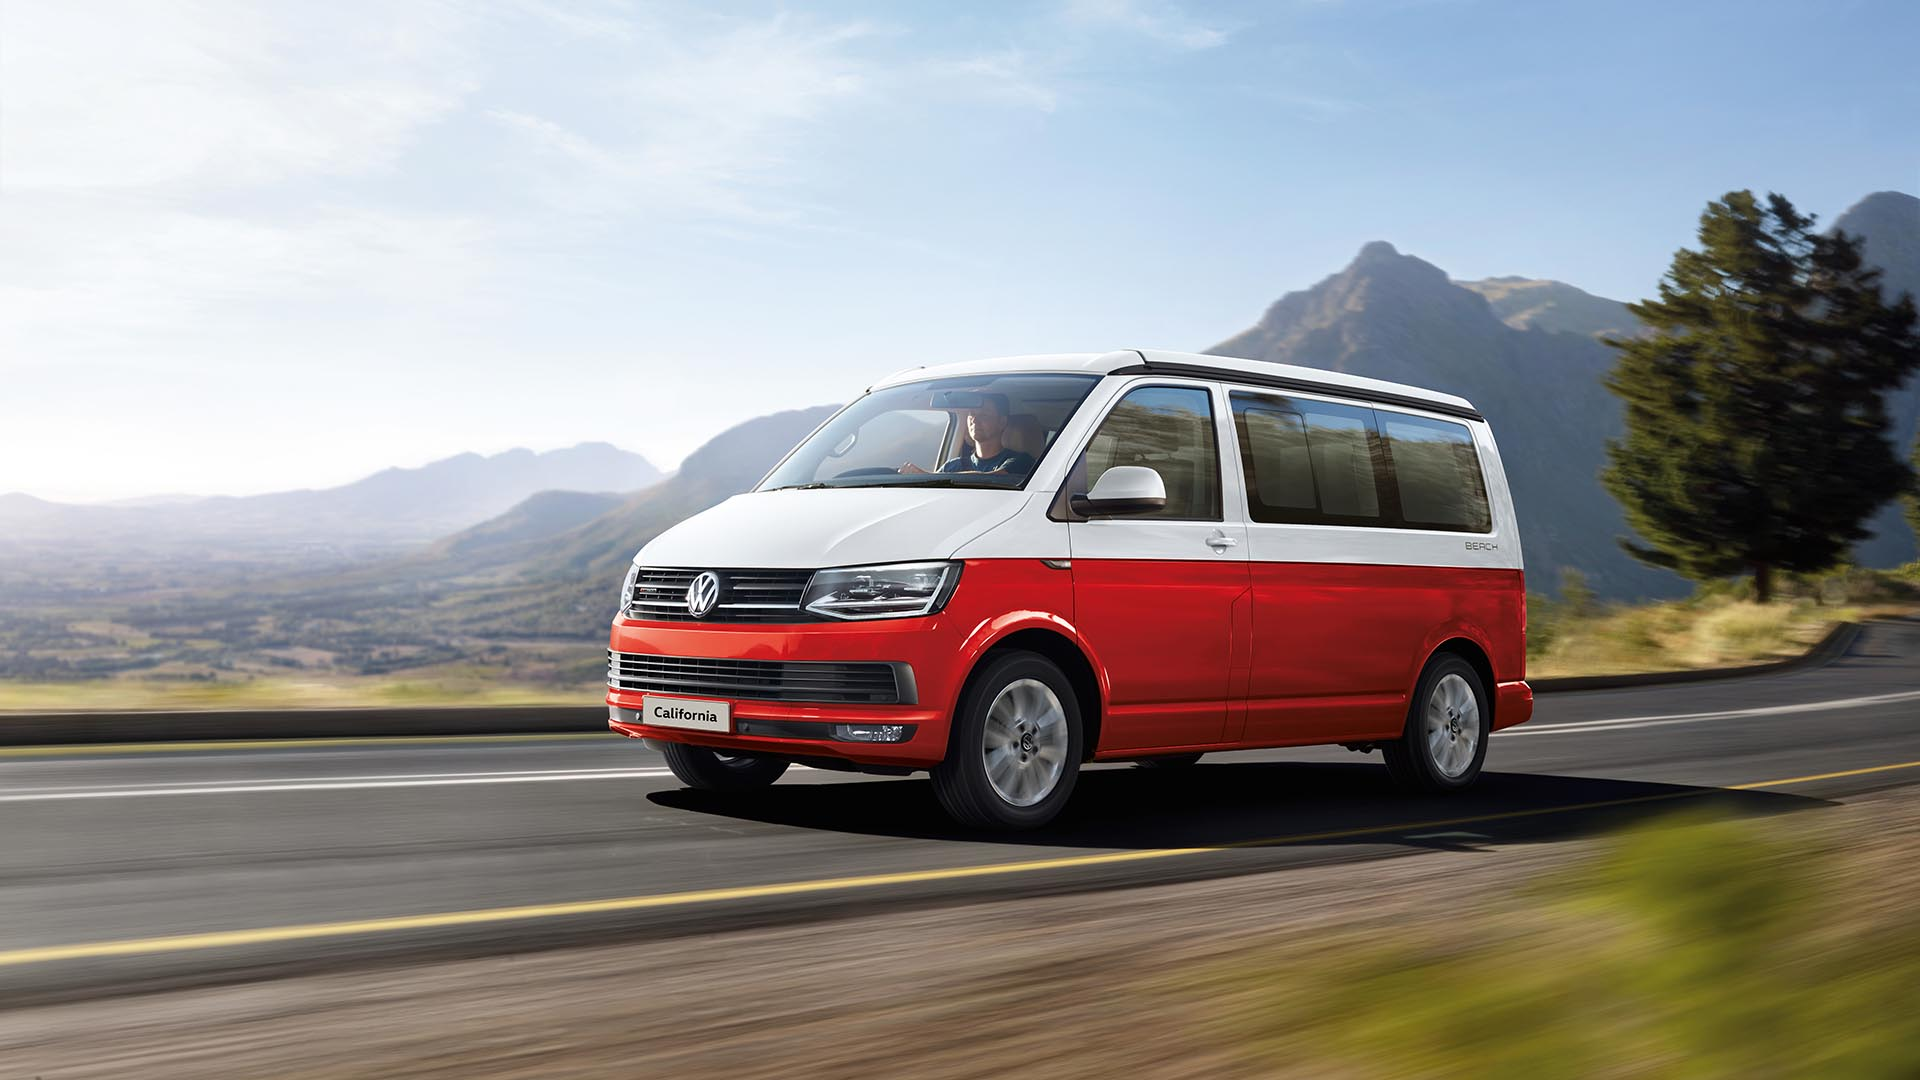 Volkswagen California specs and prices